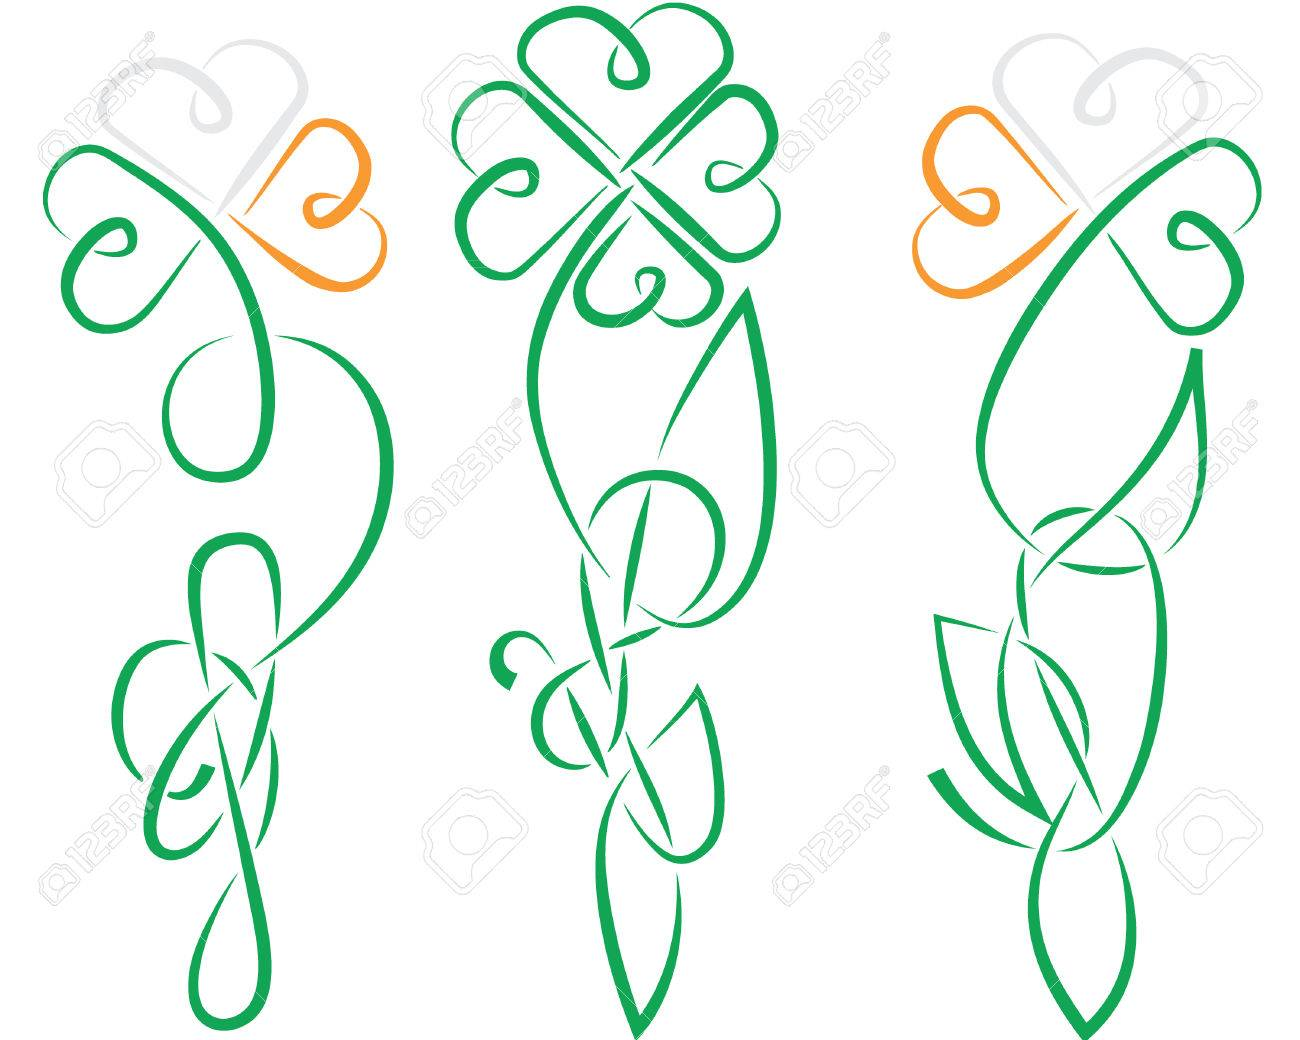 the shamrock have been made in ancient Ireland or Celtic knot style all details is separated, color easy to change, in eps8 format Stock Vector - 9045541